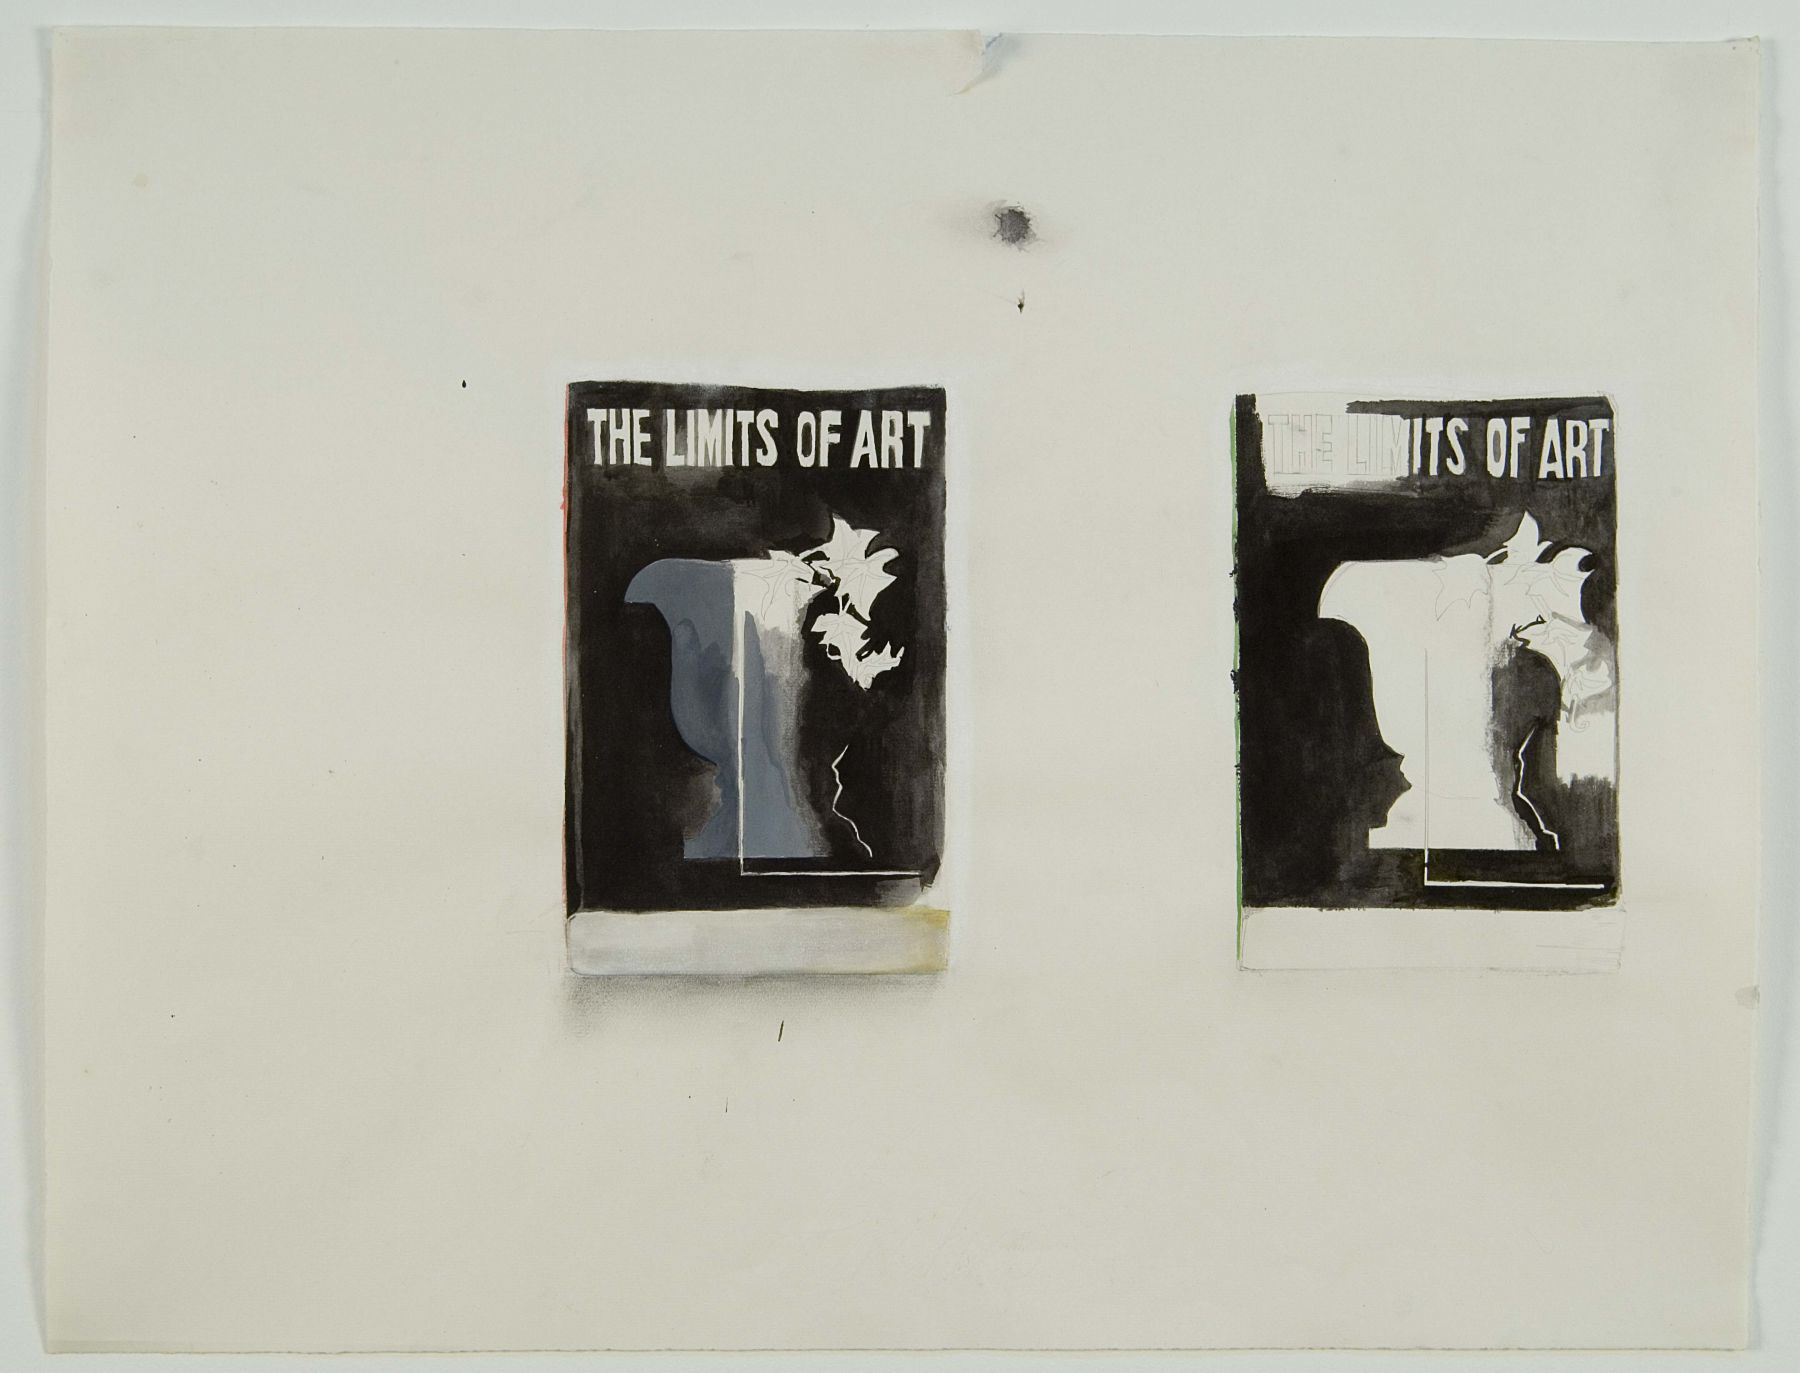 Kianja Strobert, Limit of Art II, 2006